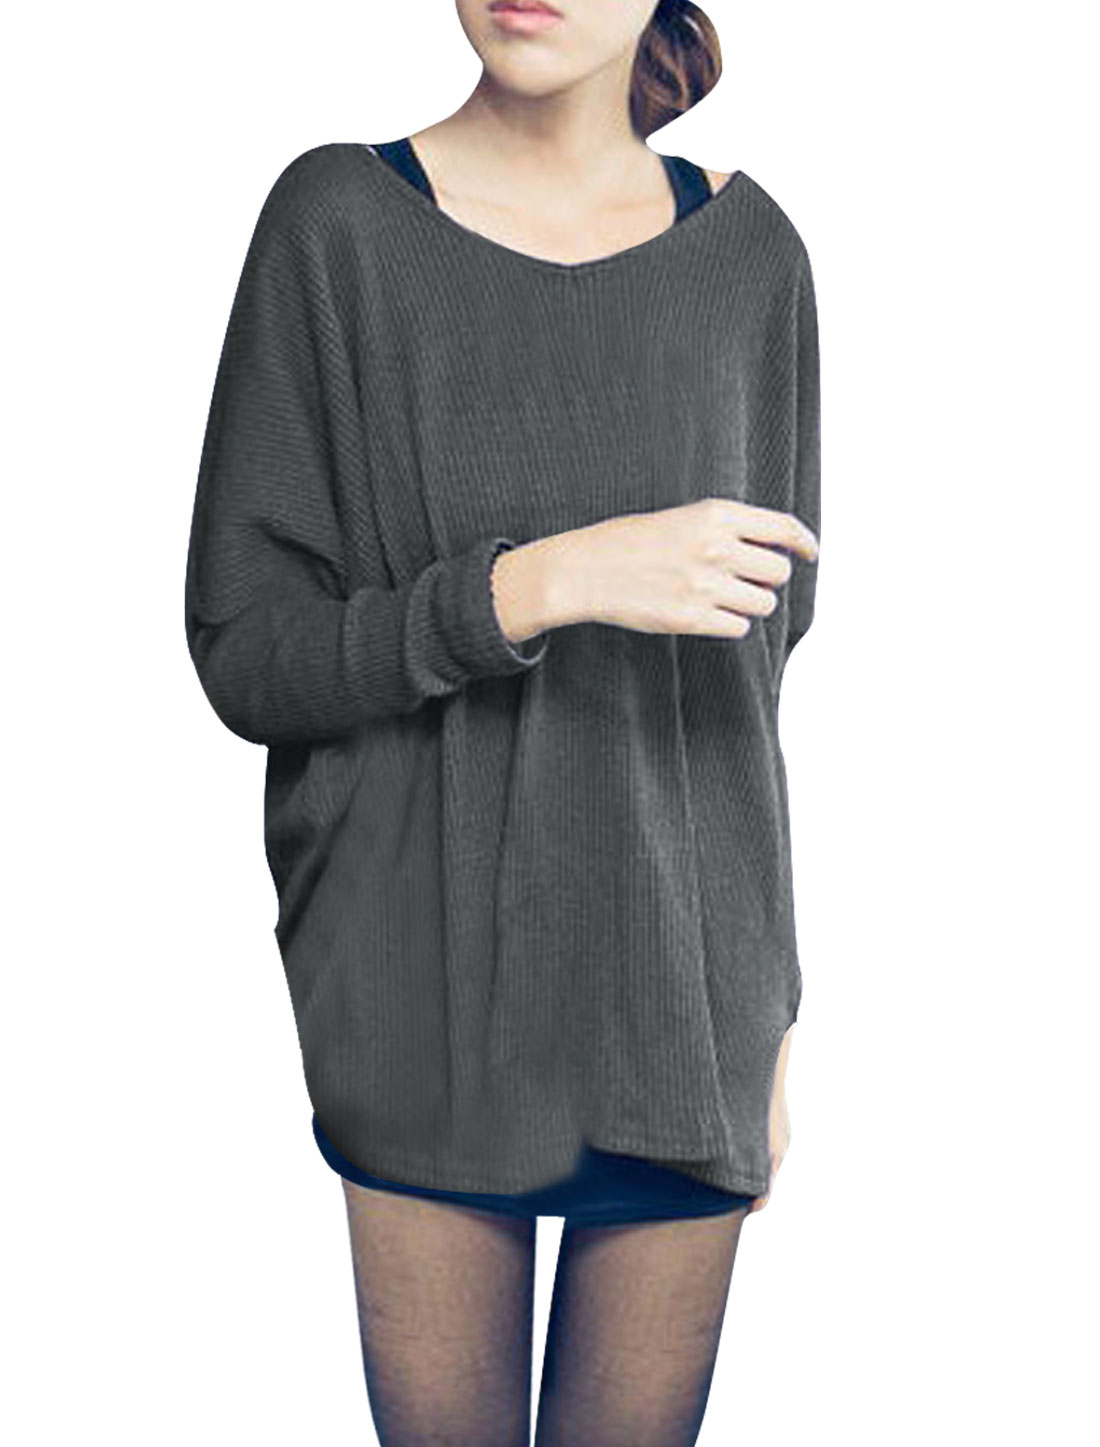 Ladies Dark Grey Long Sleeves Scoop Neck Loose Stretchy Sweater XS